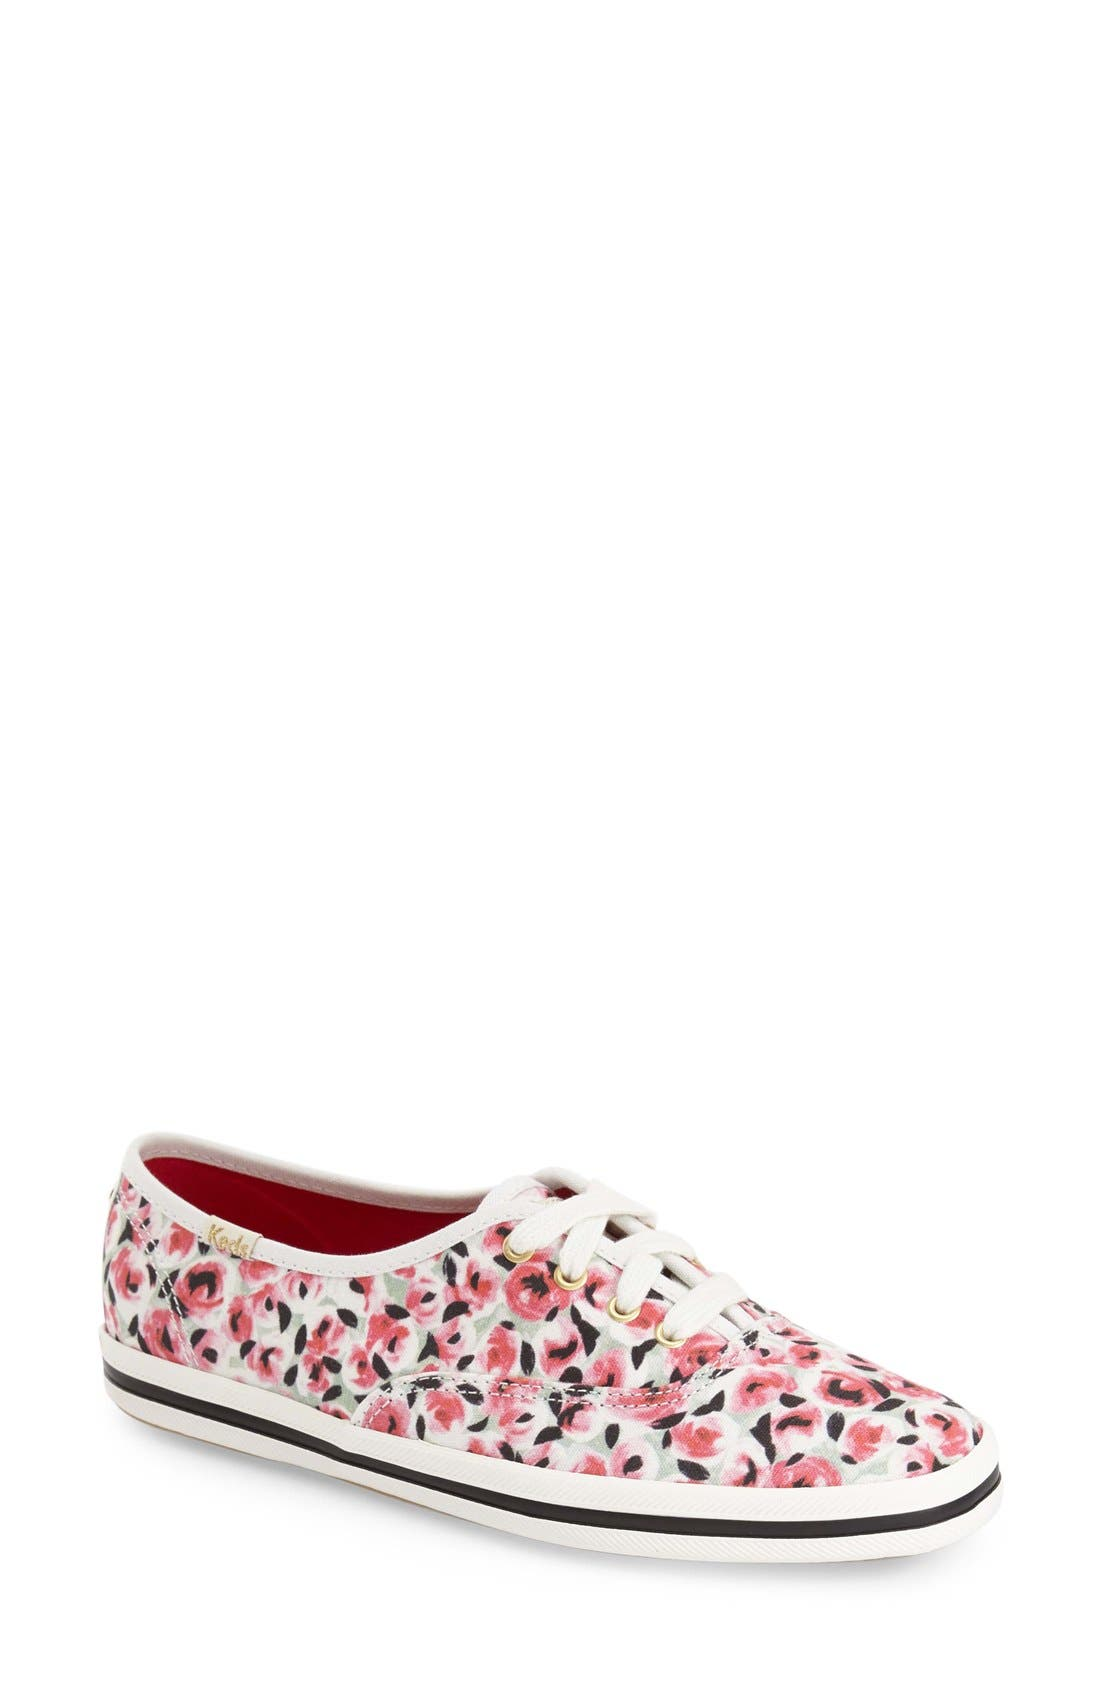 Alternate Image 1 Selected - Keds® for kate spade new york 'kick' print sneaker (Women)